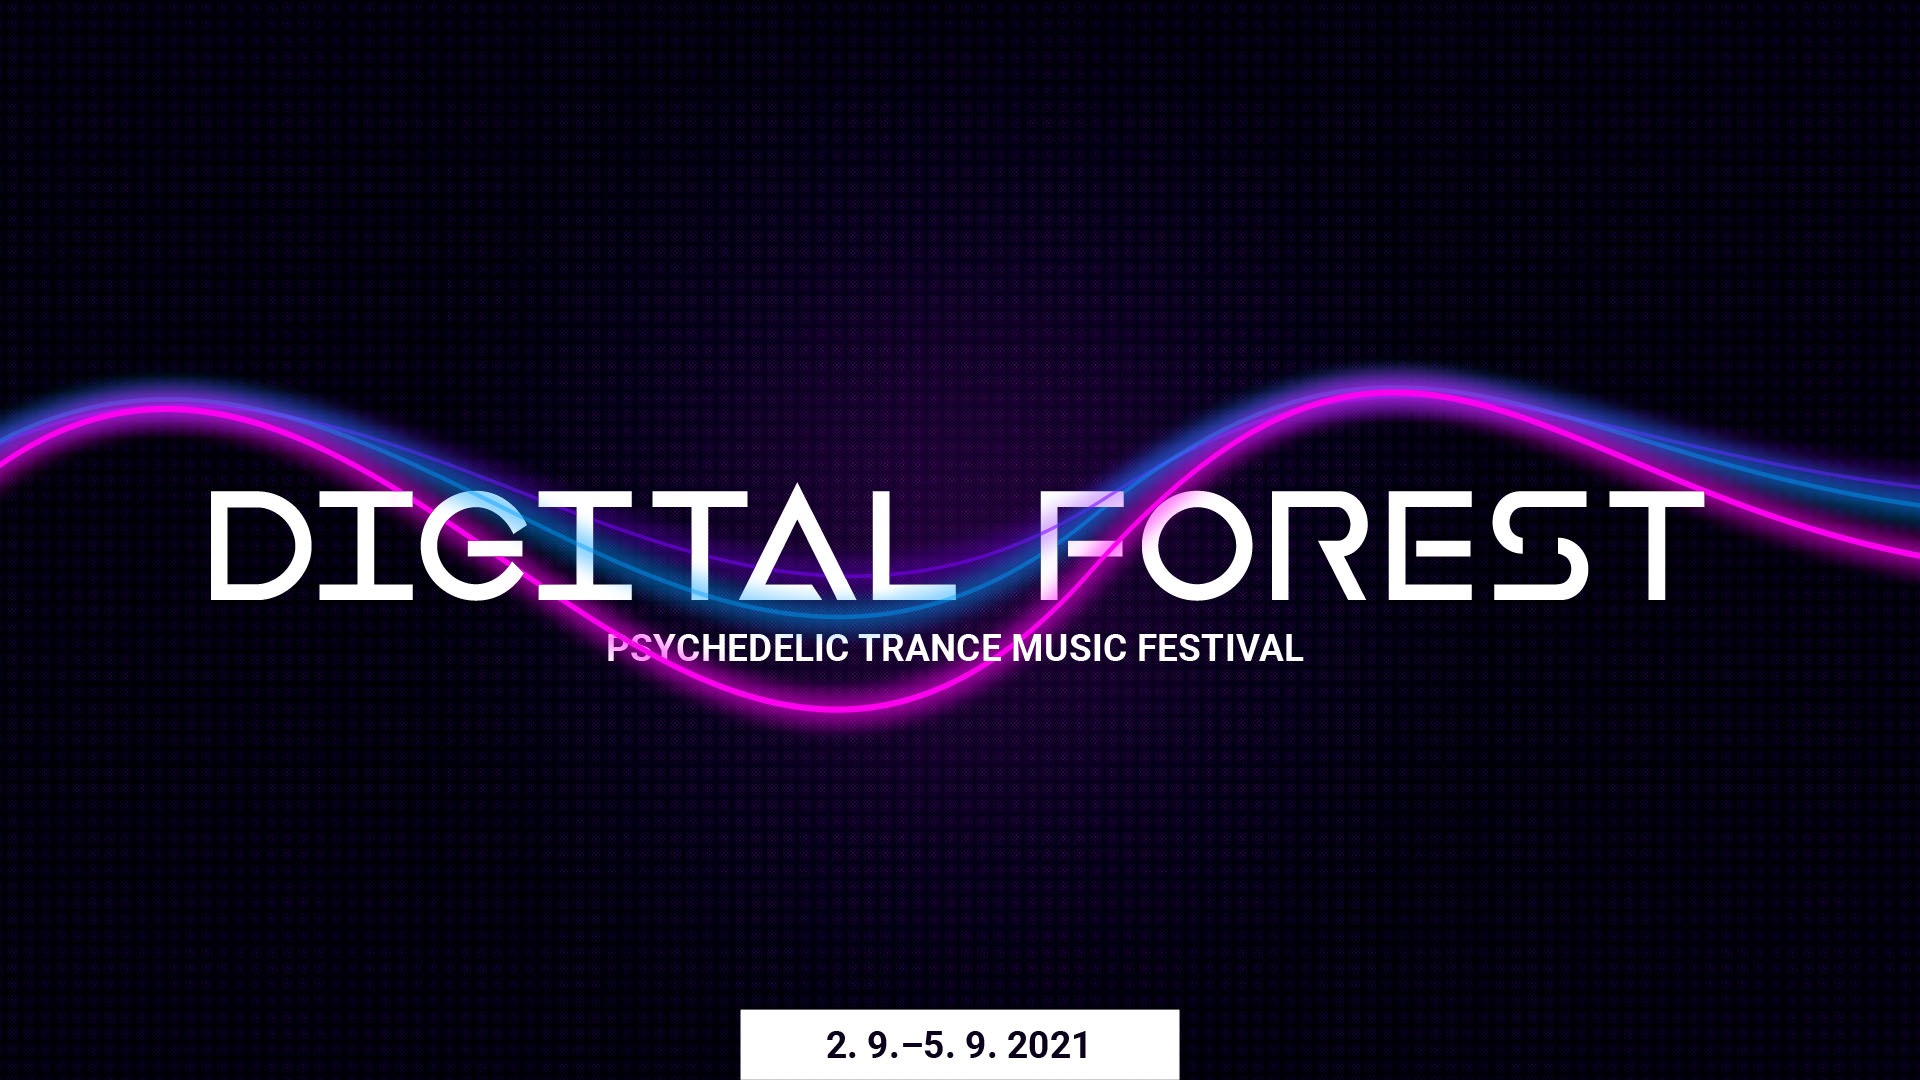 Digital Forest flyer